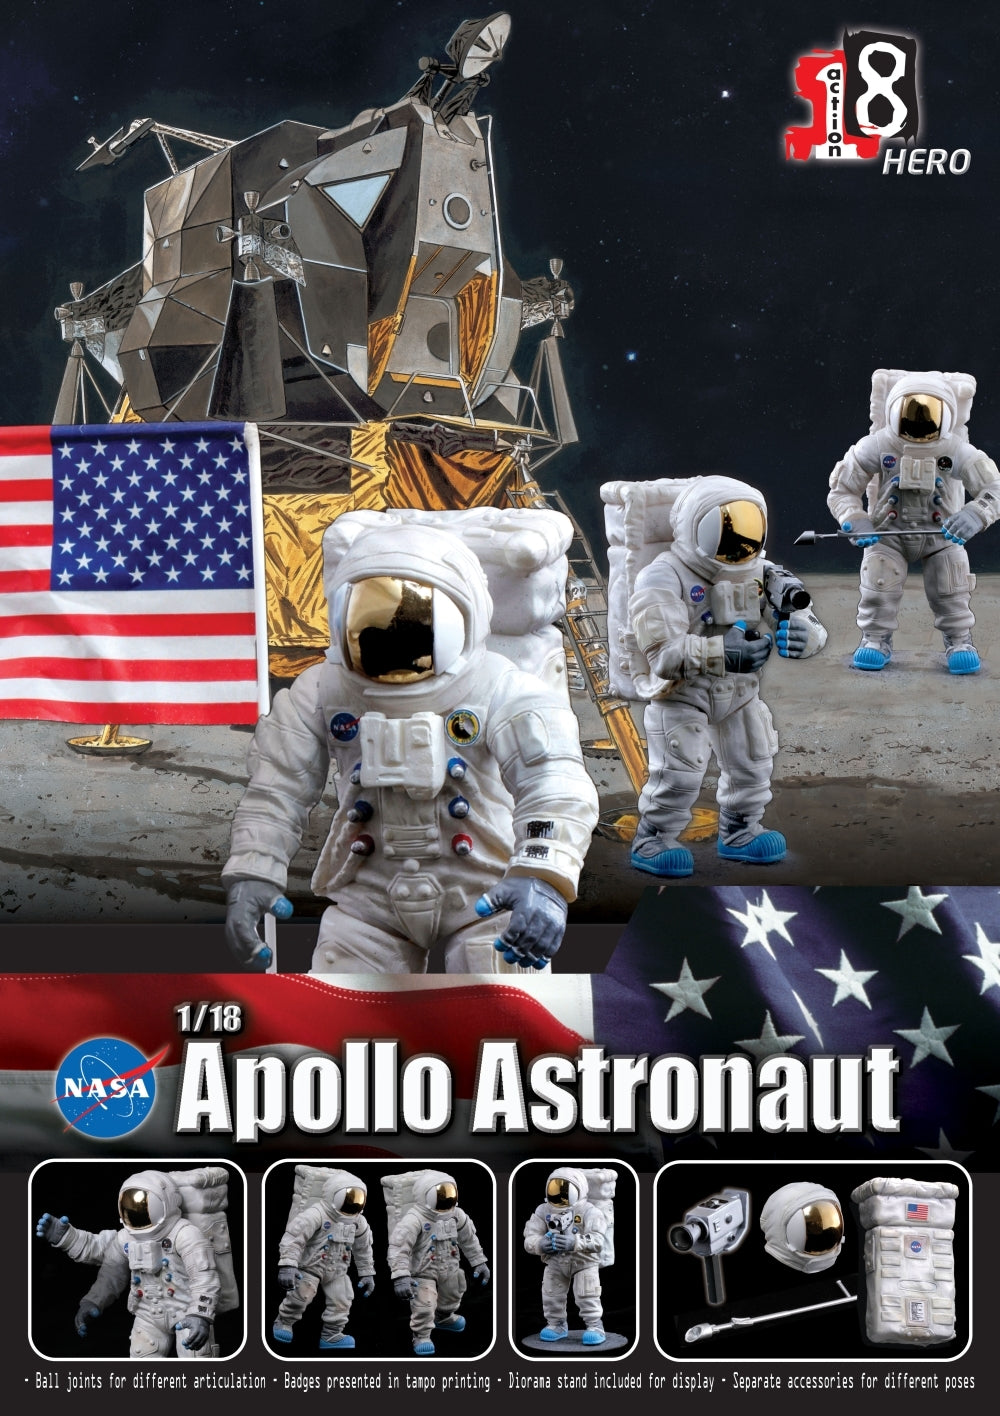 Apollo 18 Astronauts Died - Pics about space